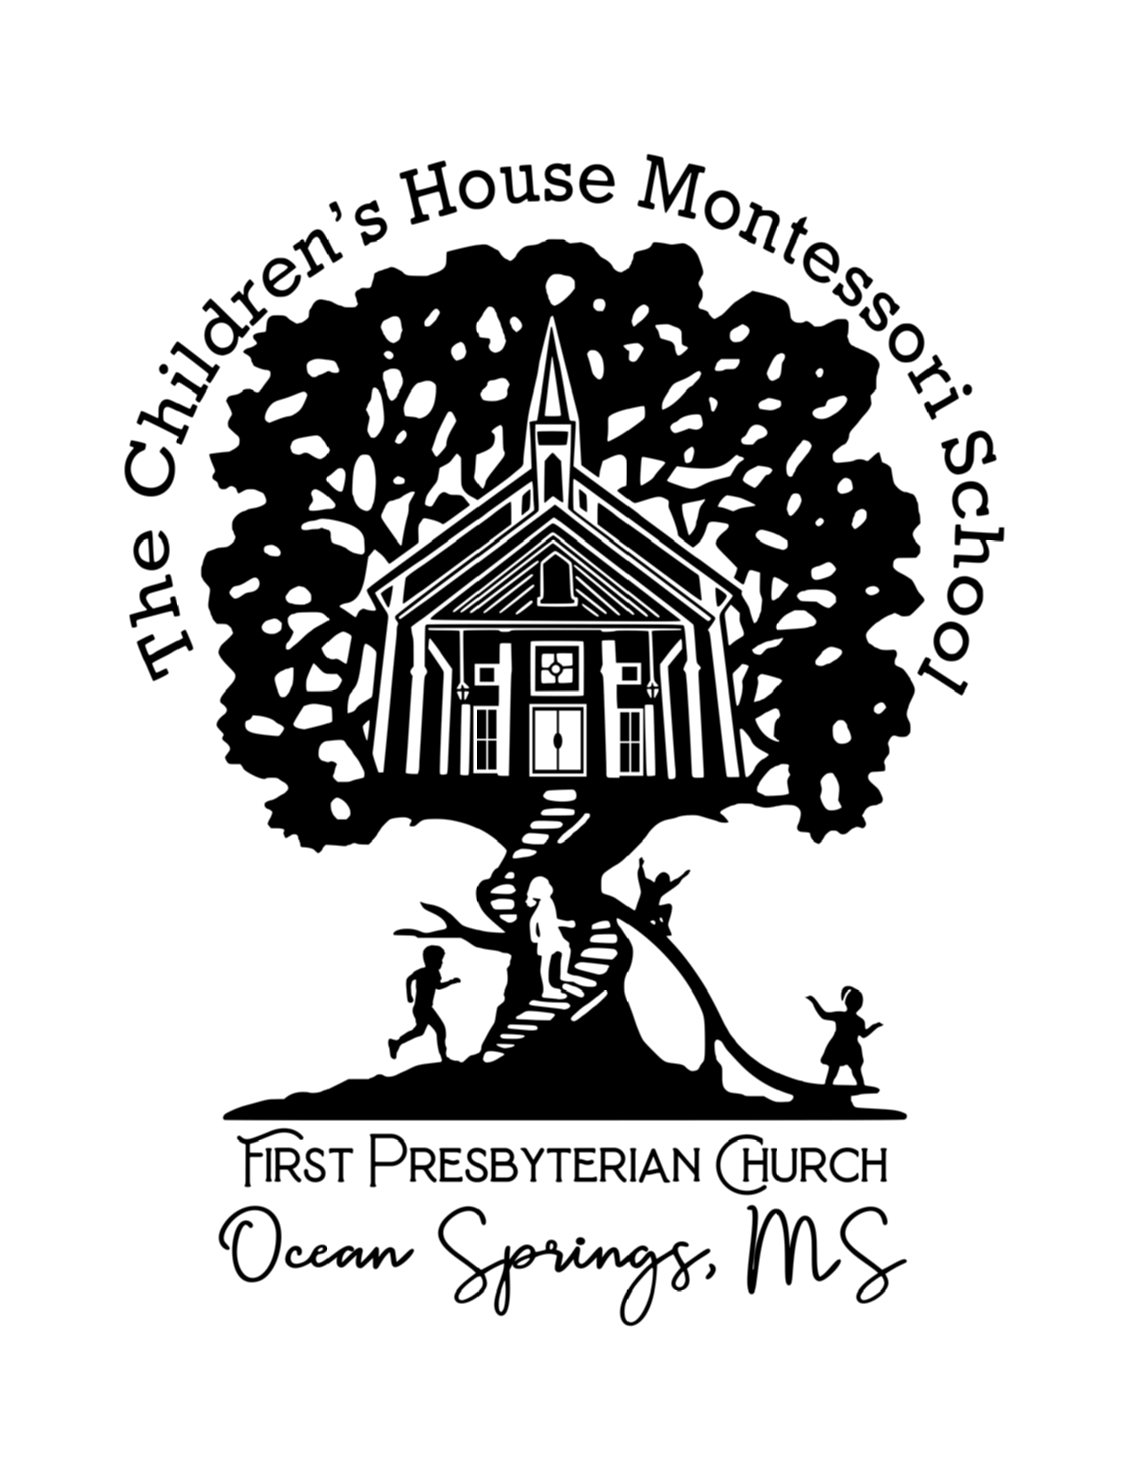 The Children's House Montessori School - Ocean Springs, MS